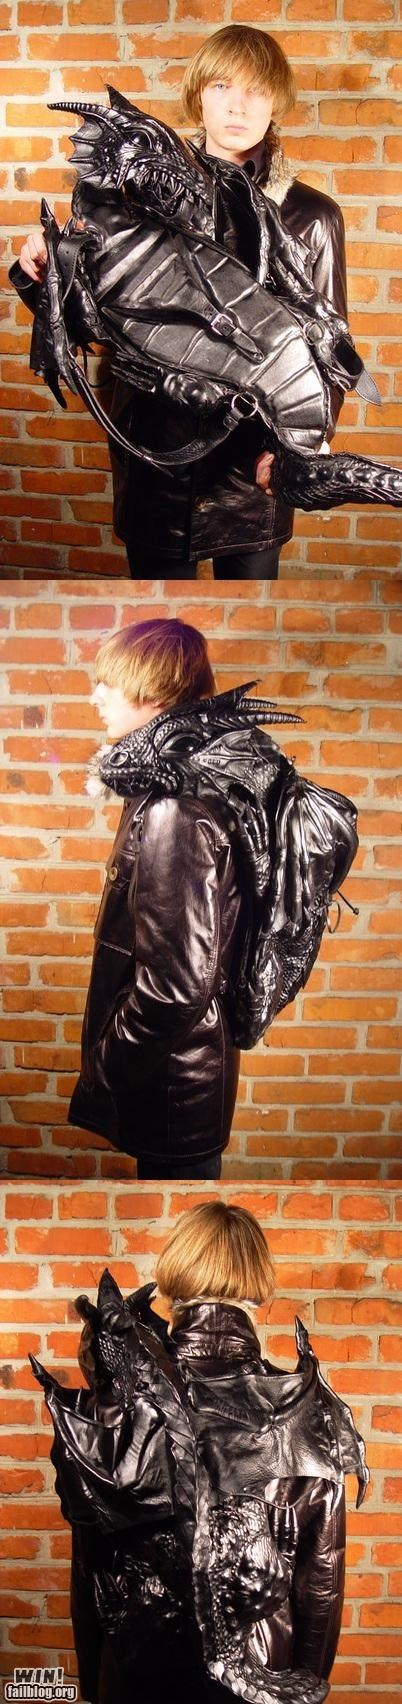 backpack design dragon fashion Hall of Fame nerdgasm wait what - 5257416448